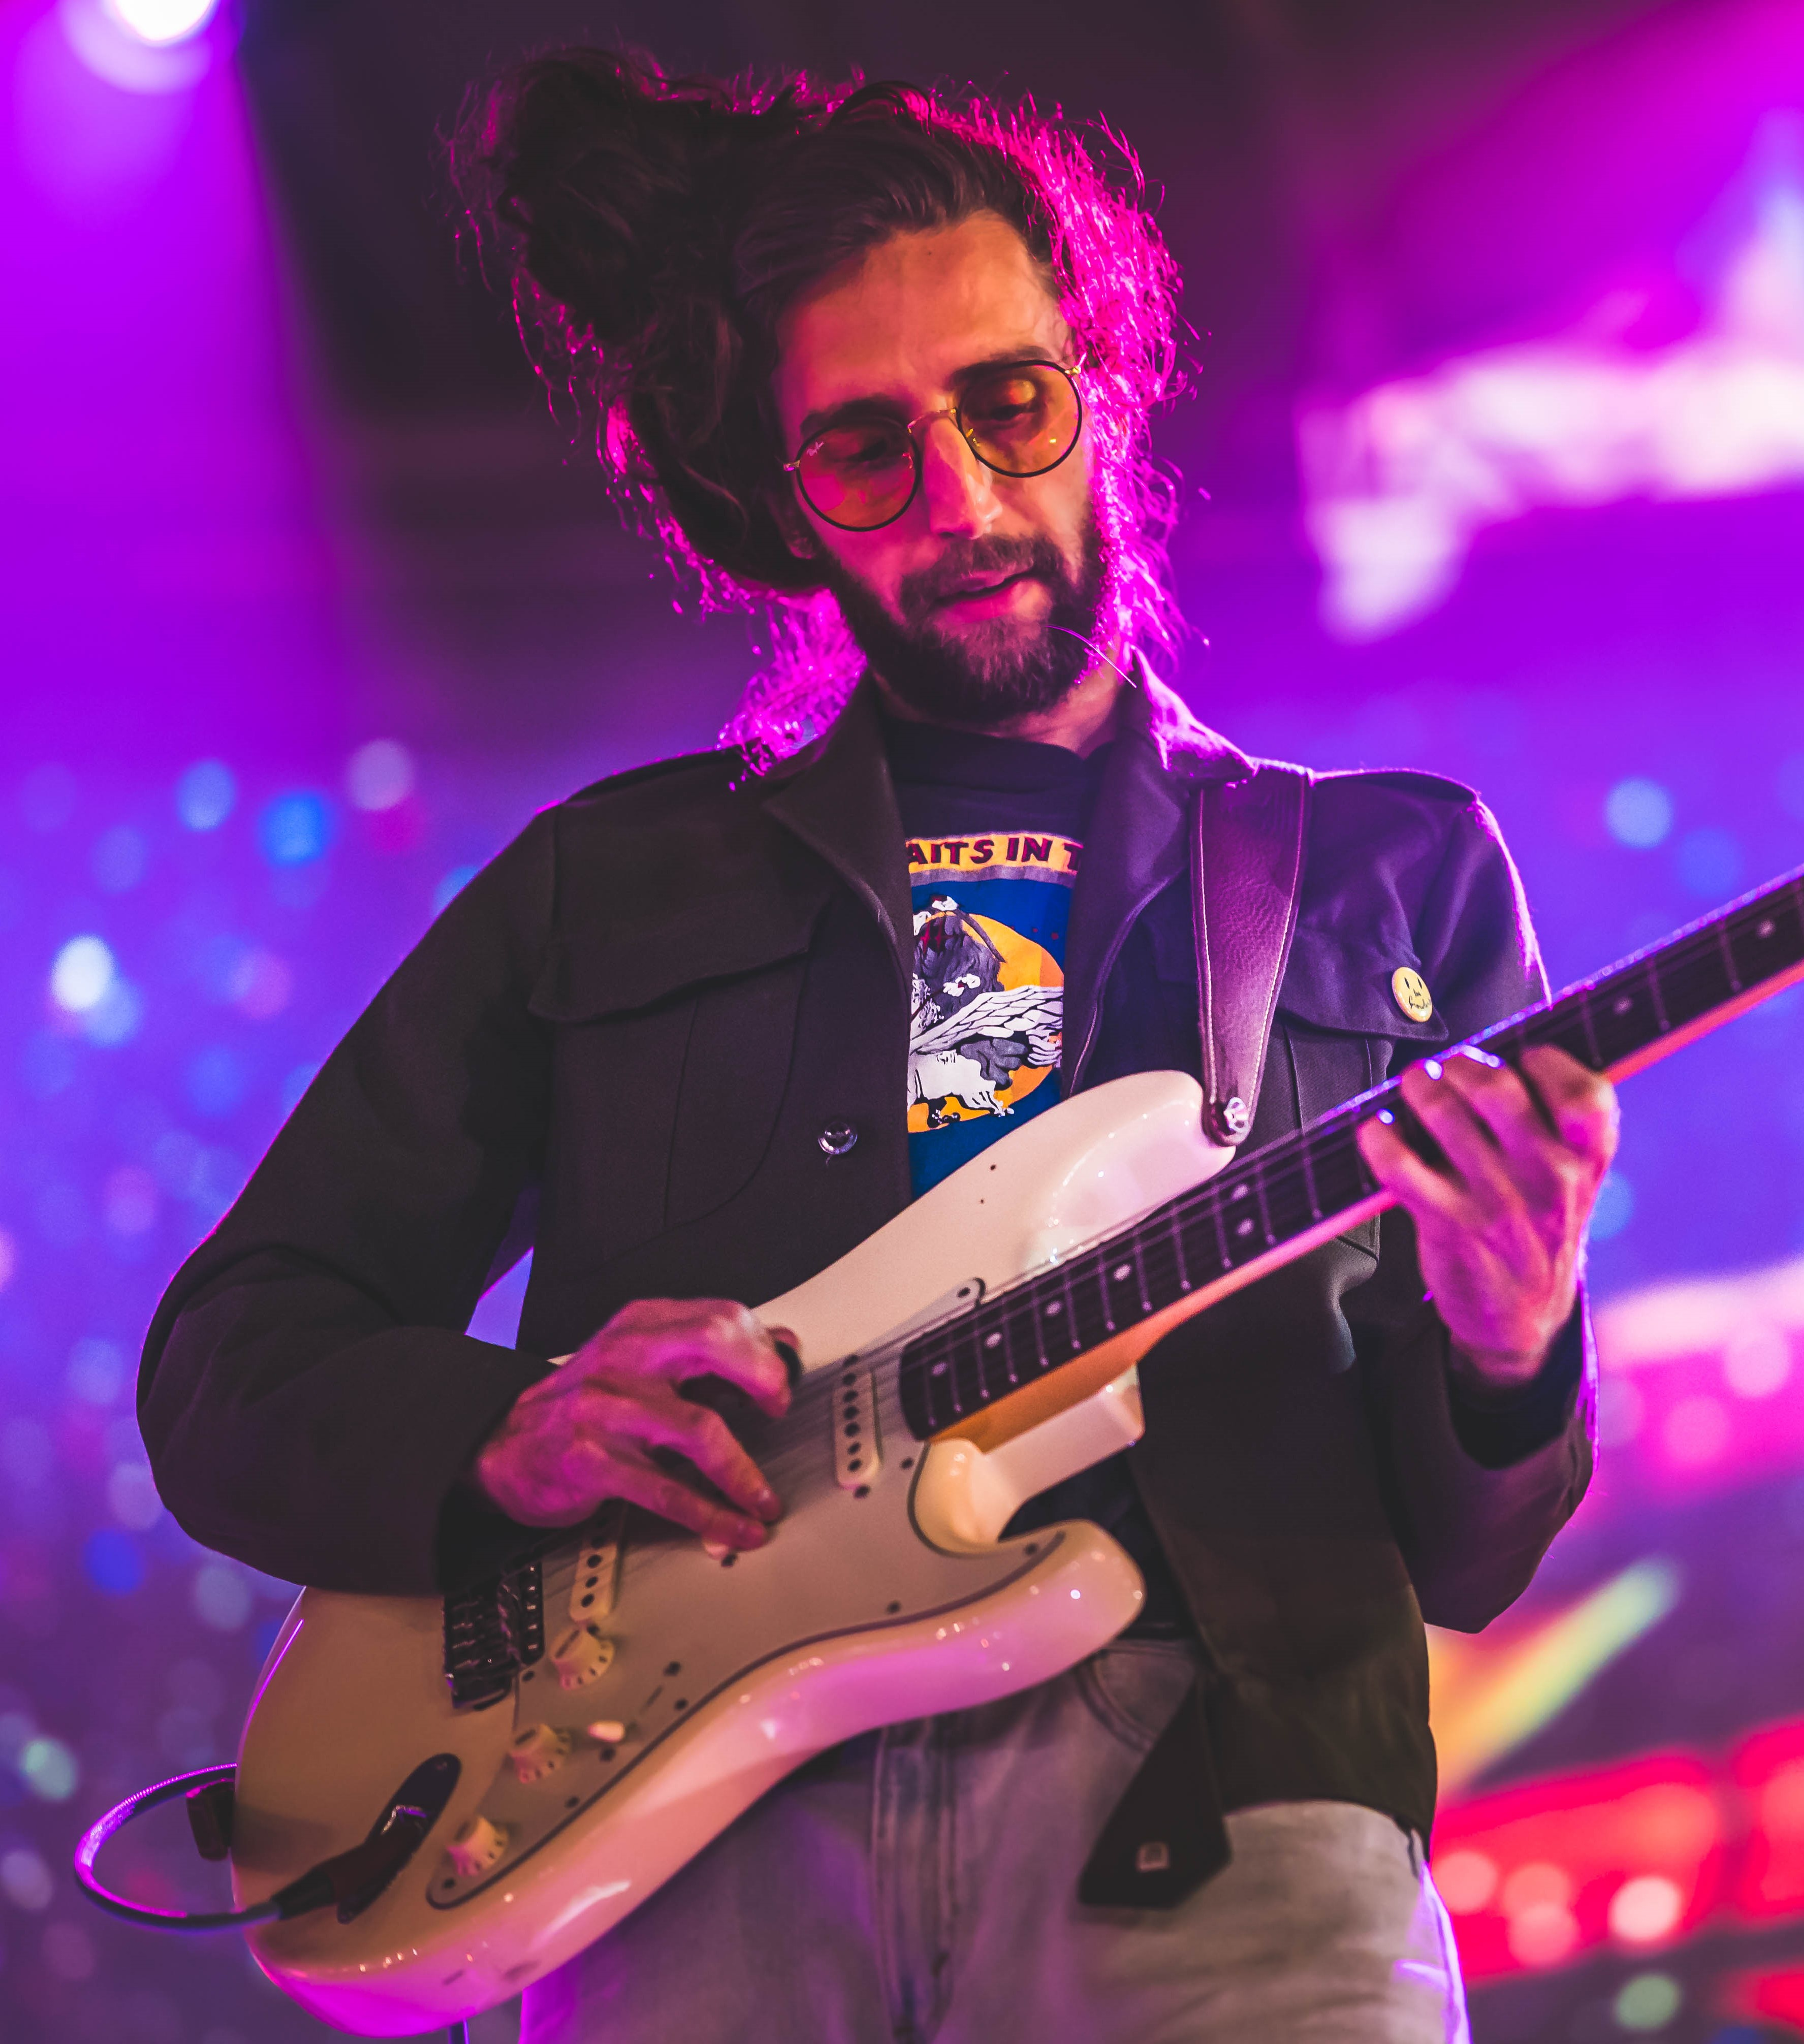 Man wearing a leather jacket, glasses, and long hair in a bun on his head plays guitar on stage at Lumen 2019. There is a mixture of purple, blue, and pink lights behind him.